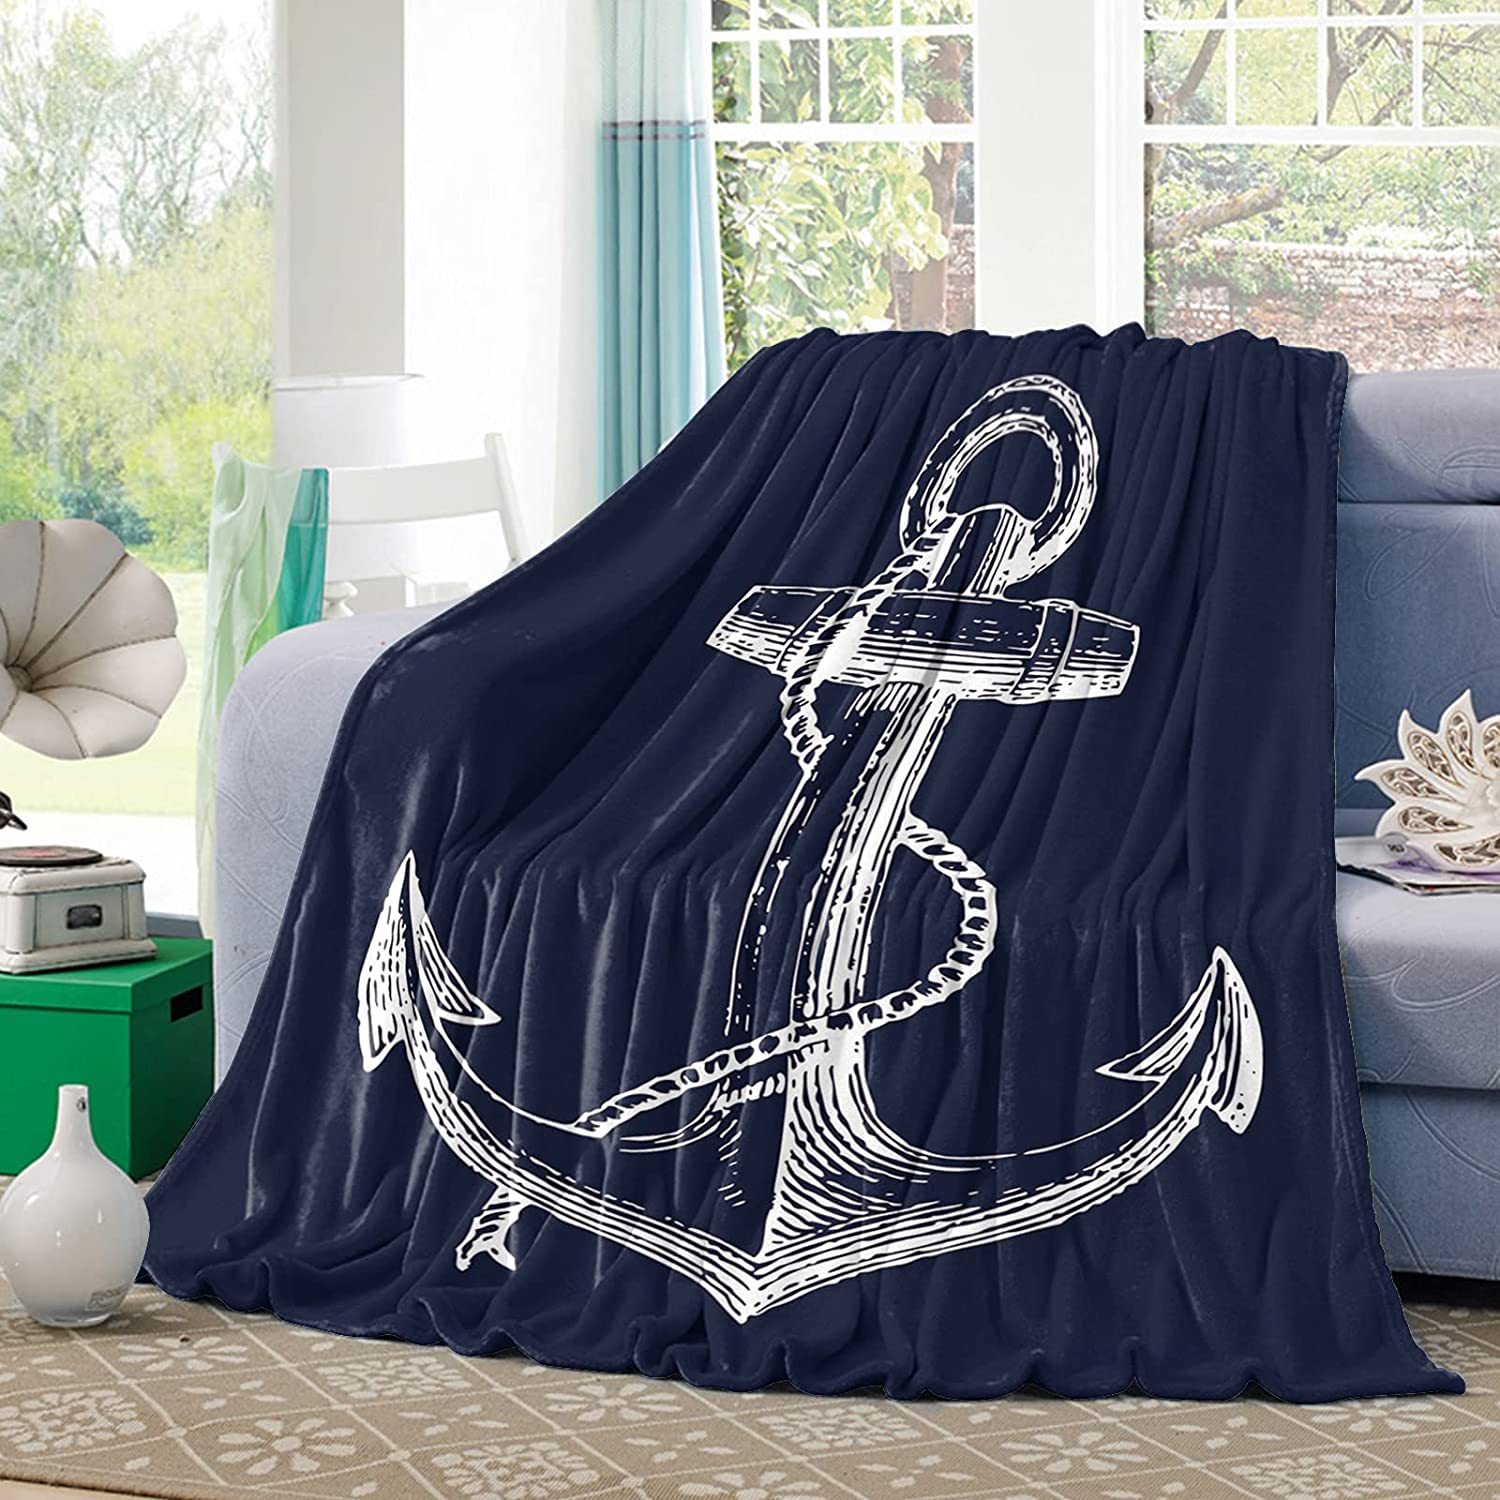 Ruian Store New item Flannel Fleece Throw Rop Nautical Blanket Limited time sale Anchor and